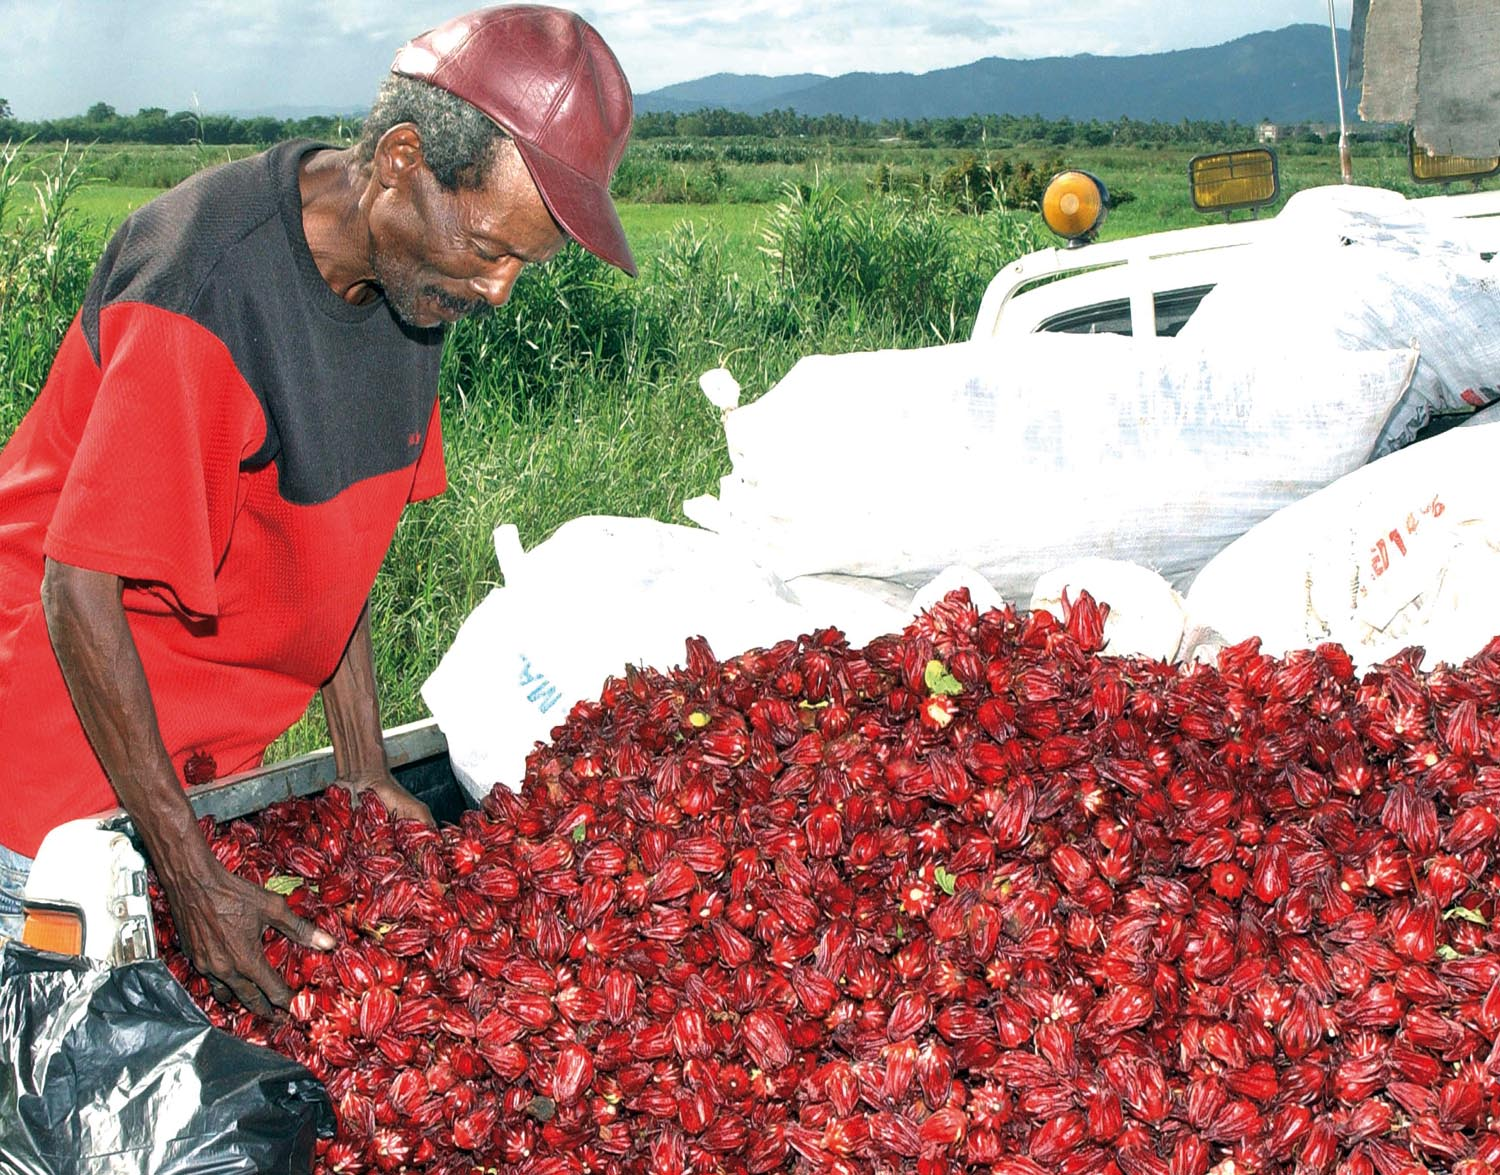 Heaps of deep red sorrel piled high in the car trunks of a roadside vendor in Trinidad. Photograph by Robert Taylor